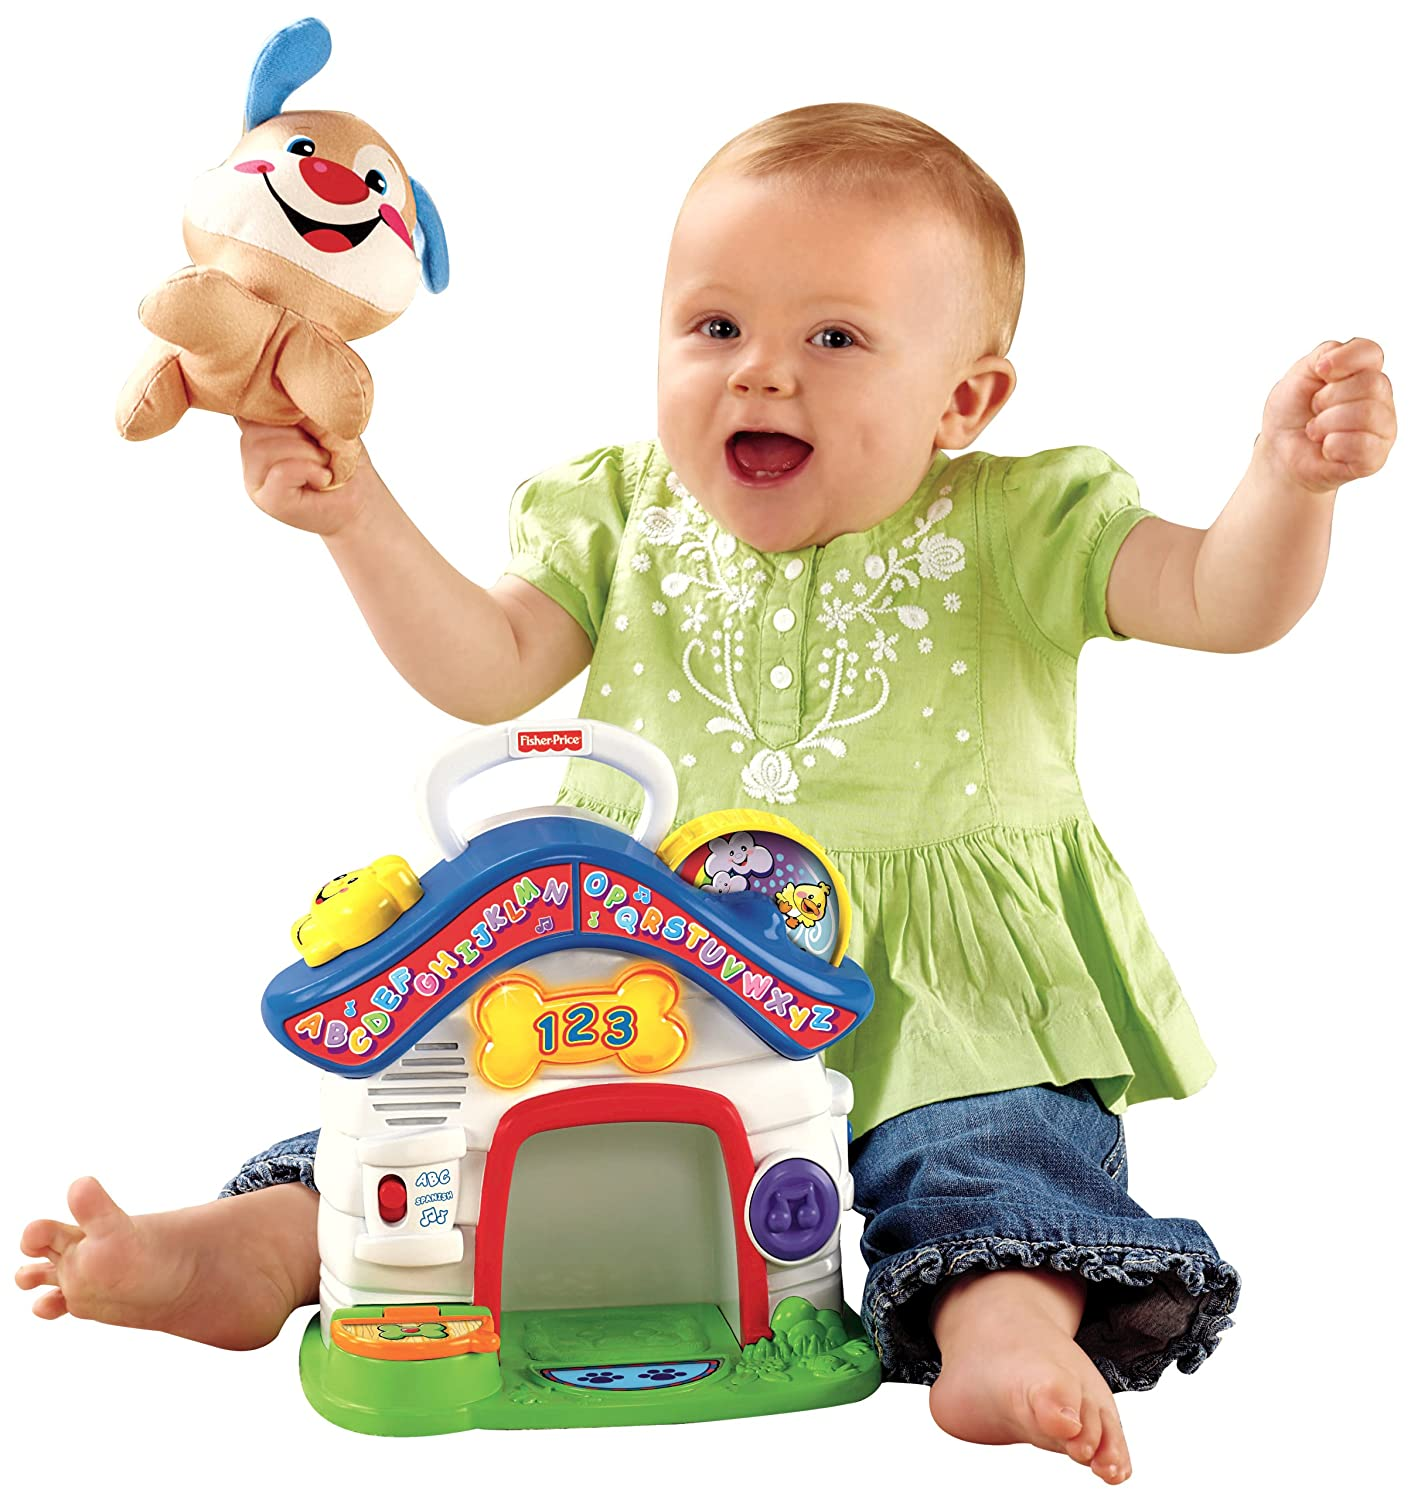 Fisher-Price Laugh /& Learn Puppys Playhouse